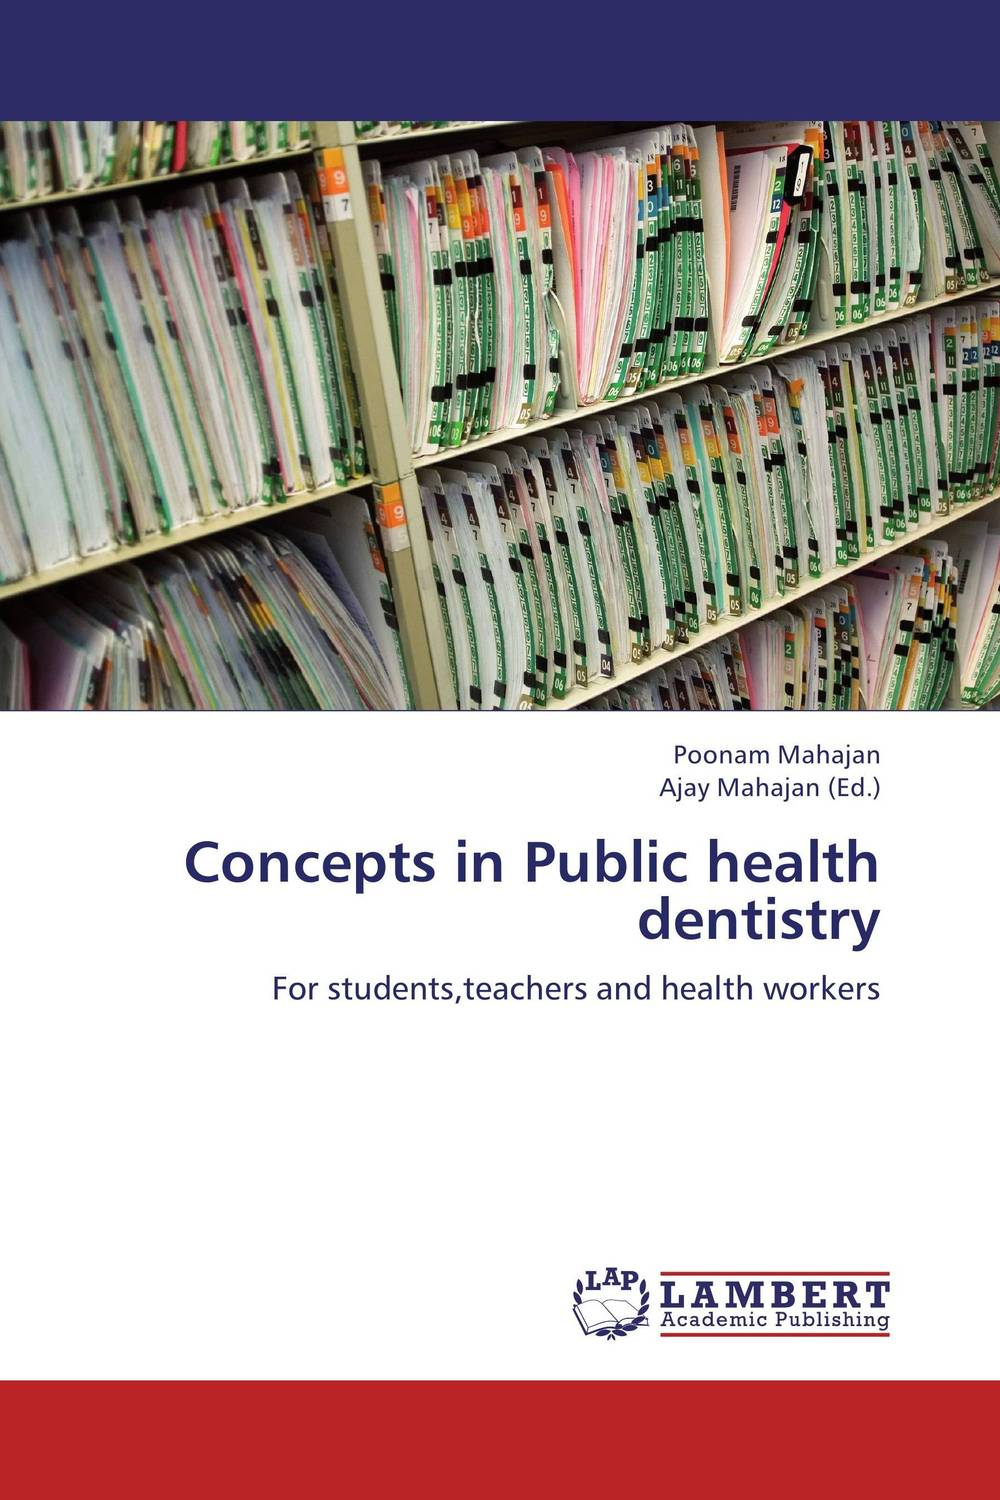 Concepts in Public health dentistry